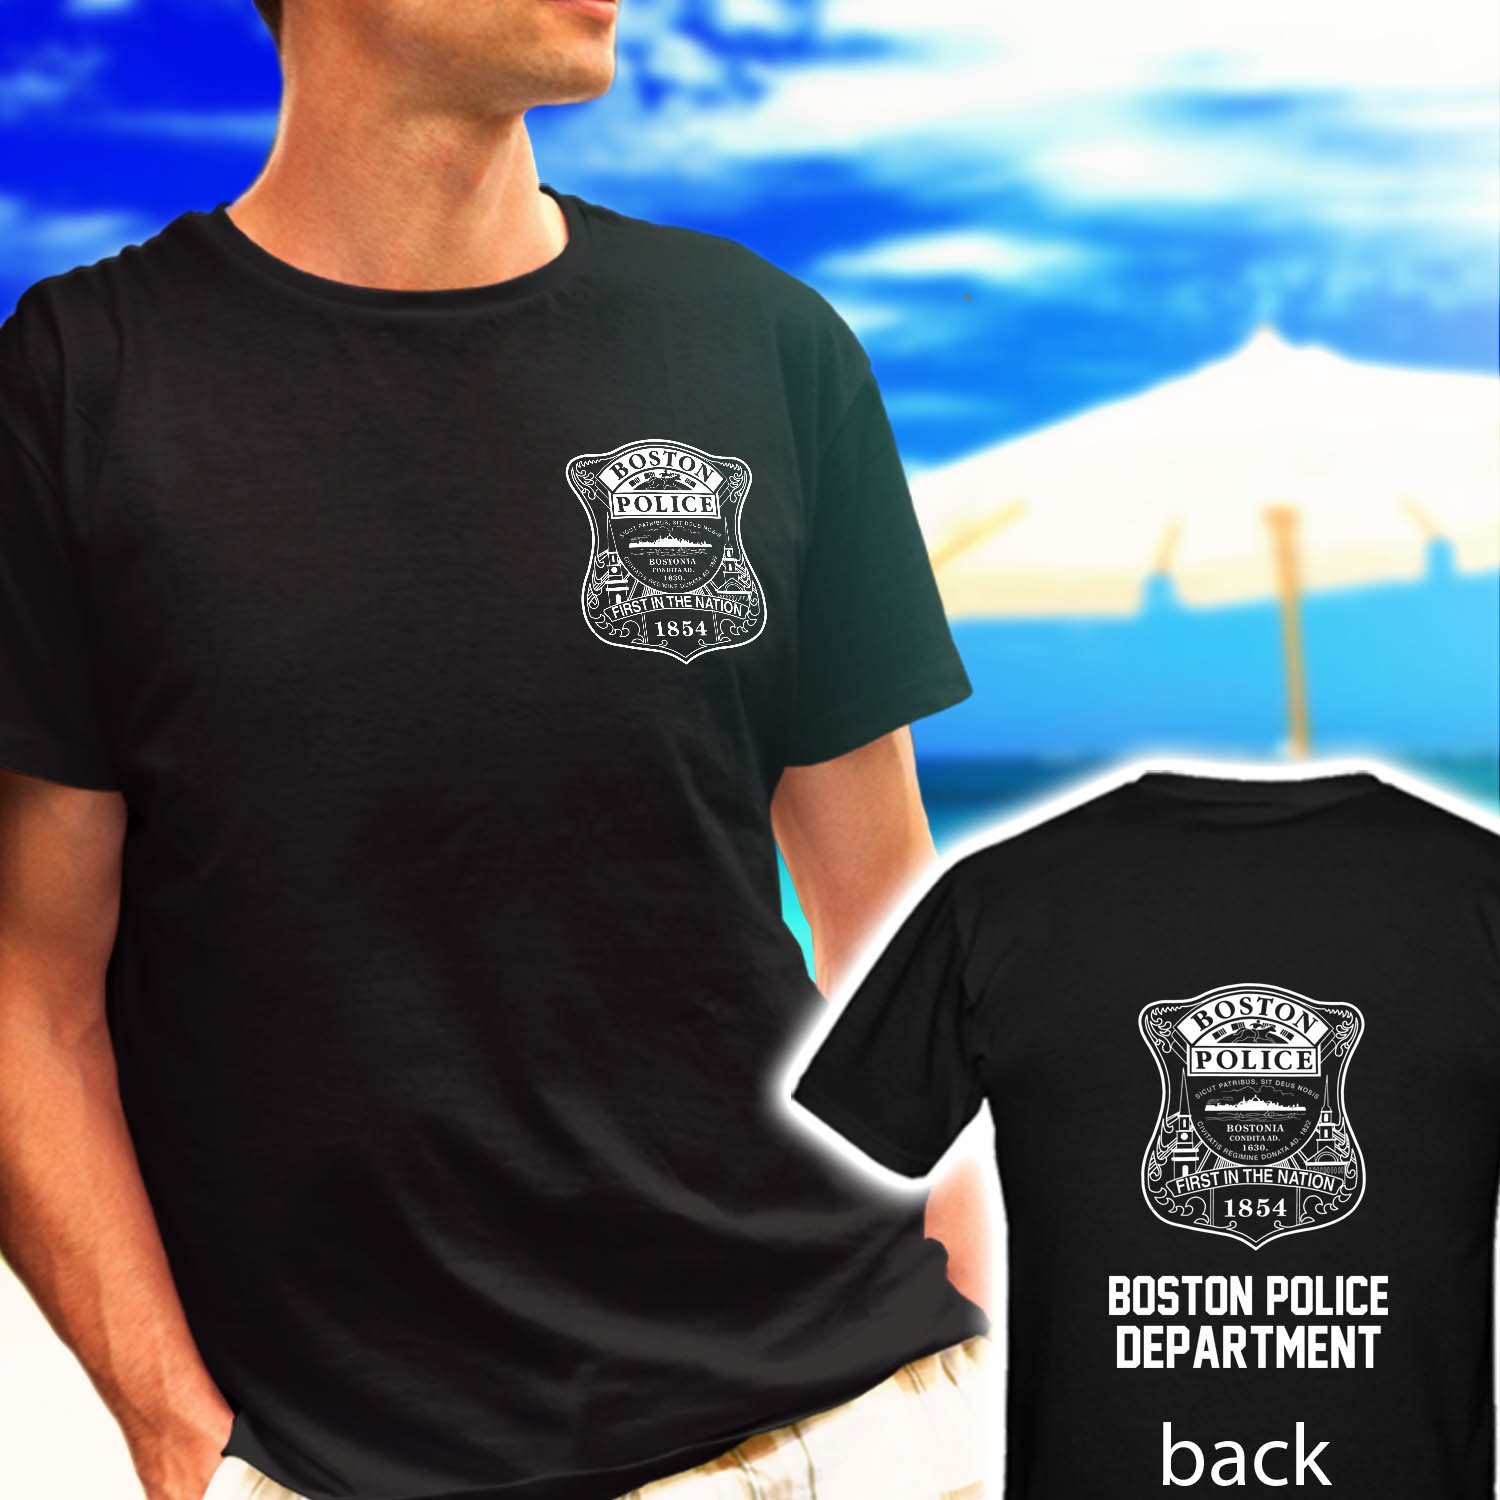 BOSTON POLICE DEPARTMENT logo badge black t-shirt tshirt shirts tee SIZE 2XL